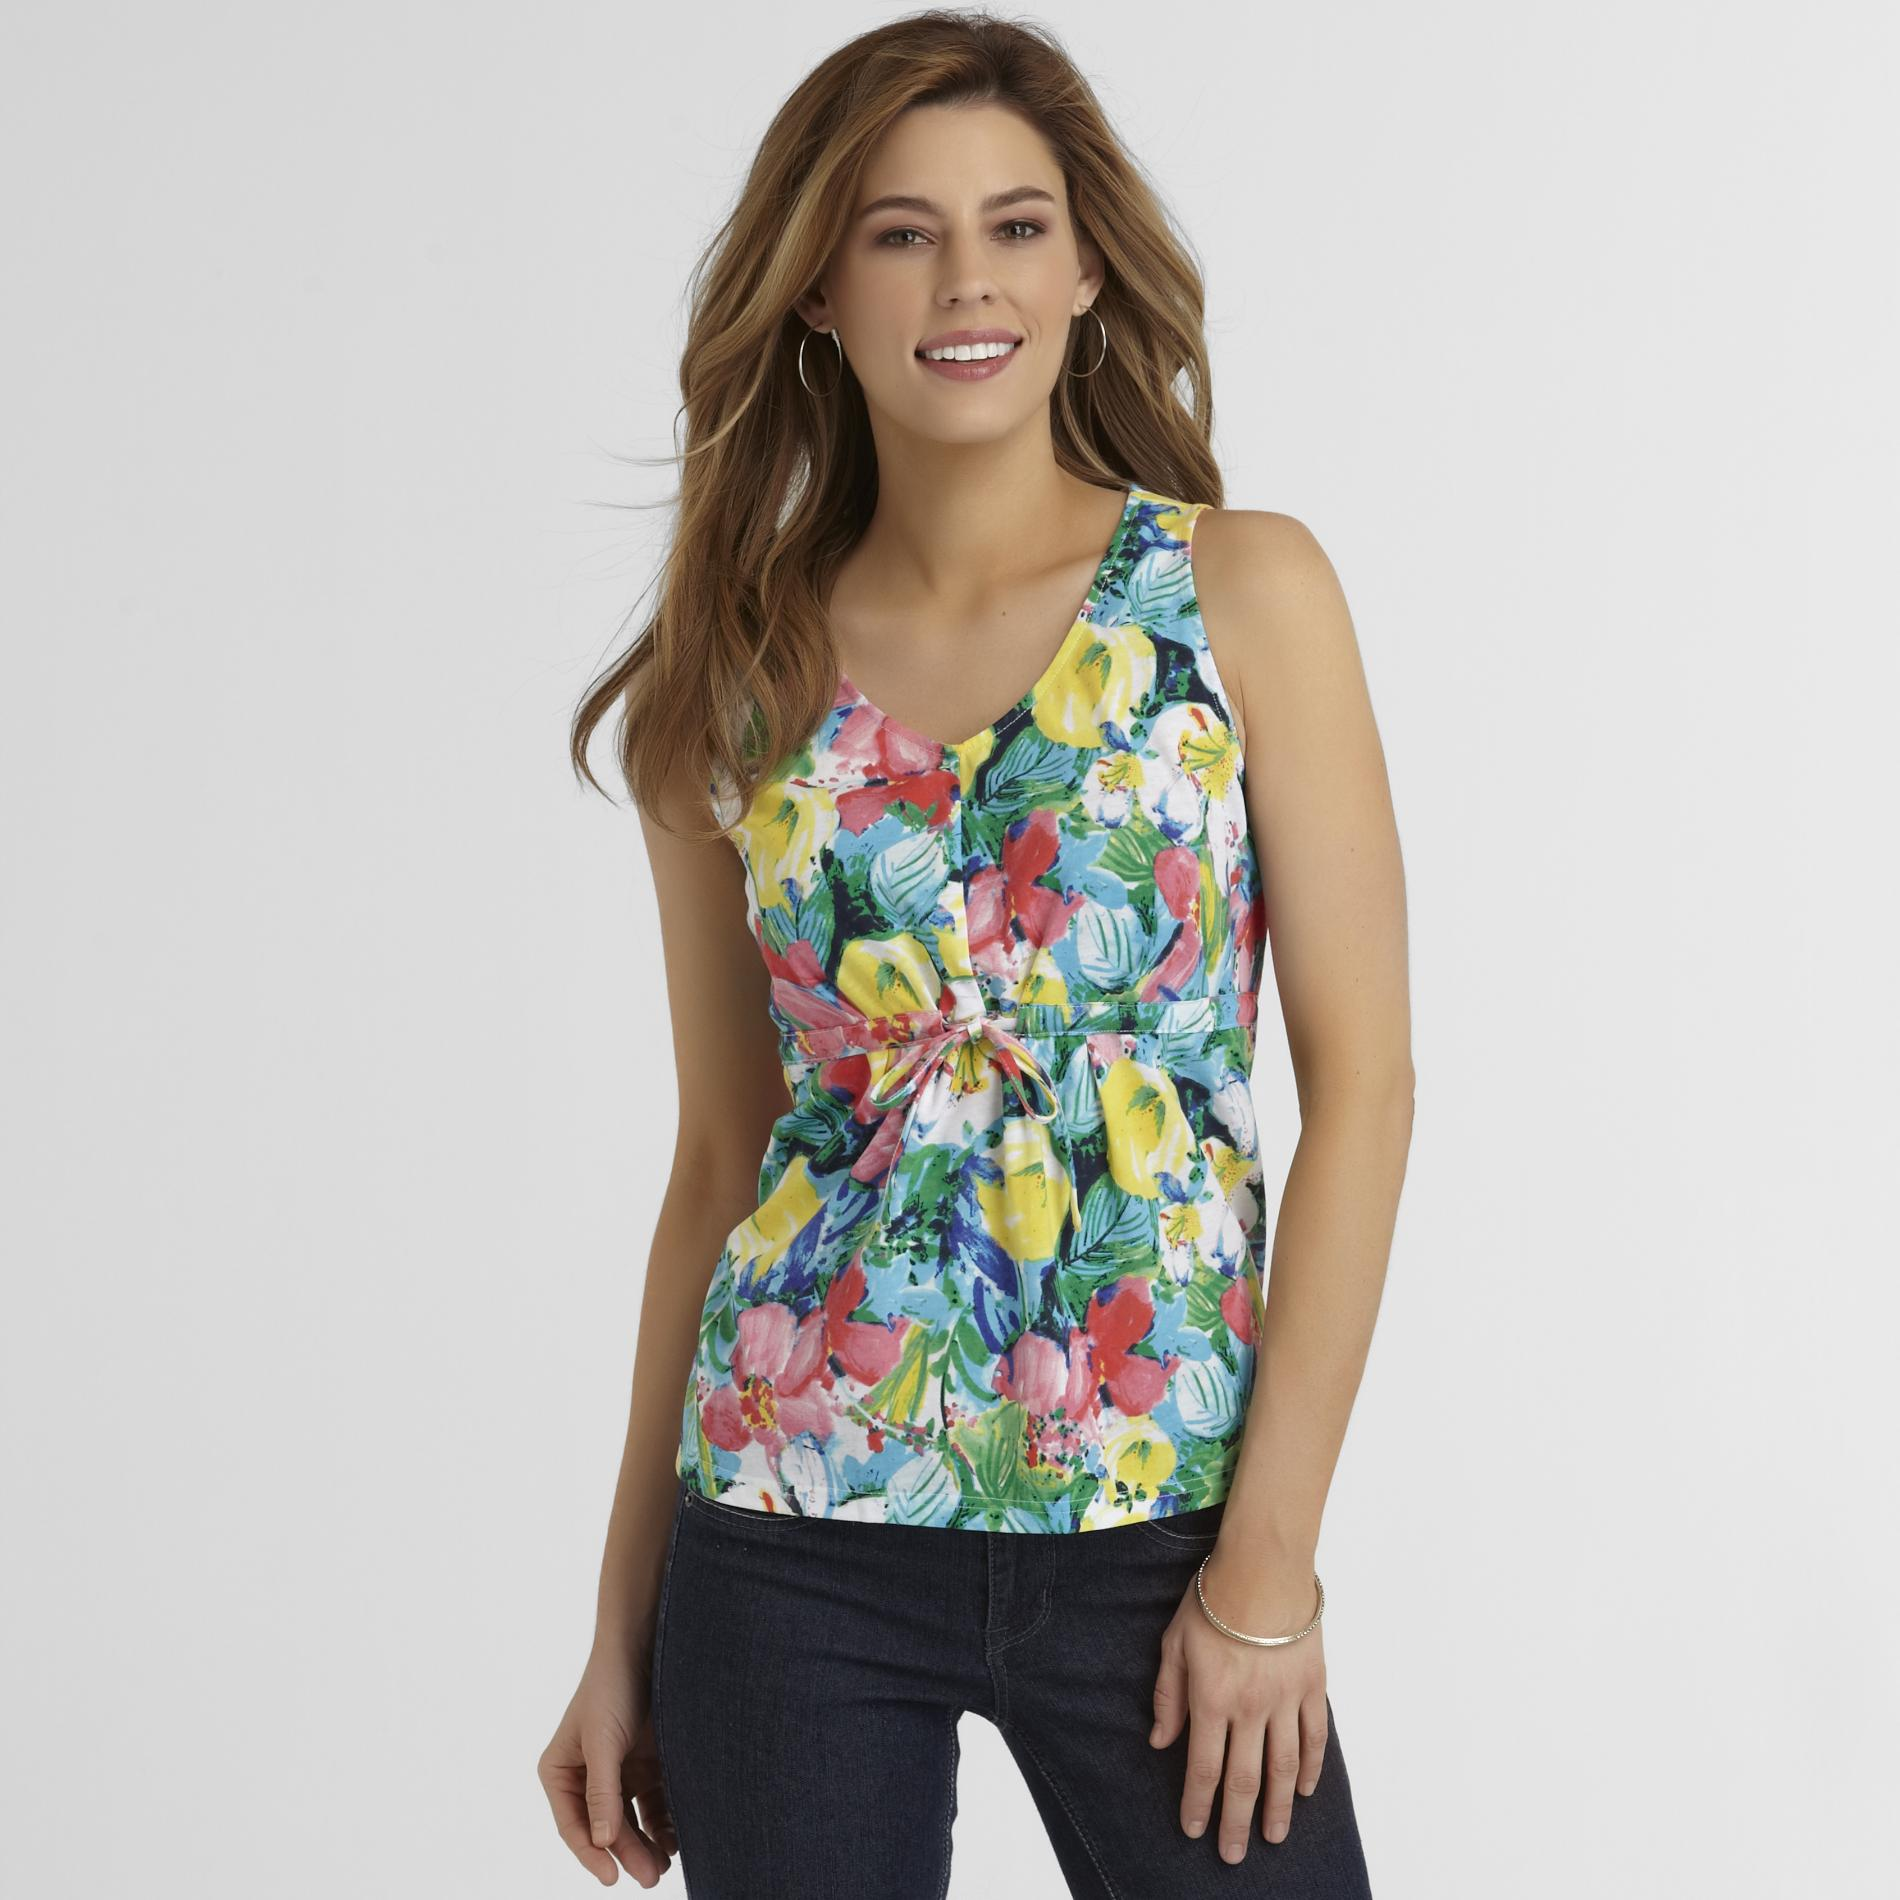 Basic Editions Women's Tank Top - Floral at Kmart.com